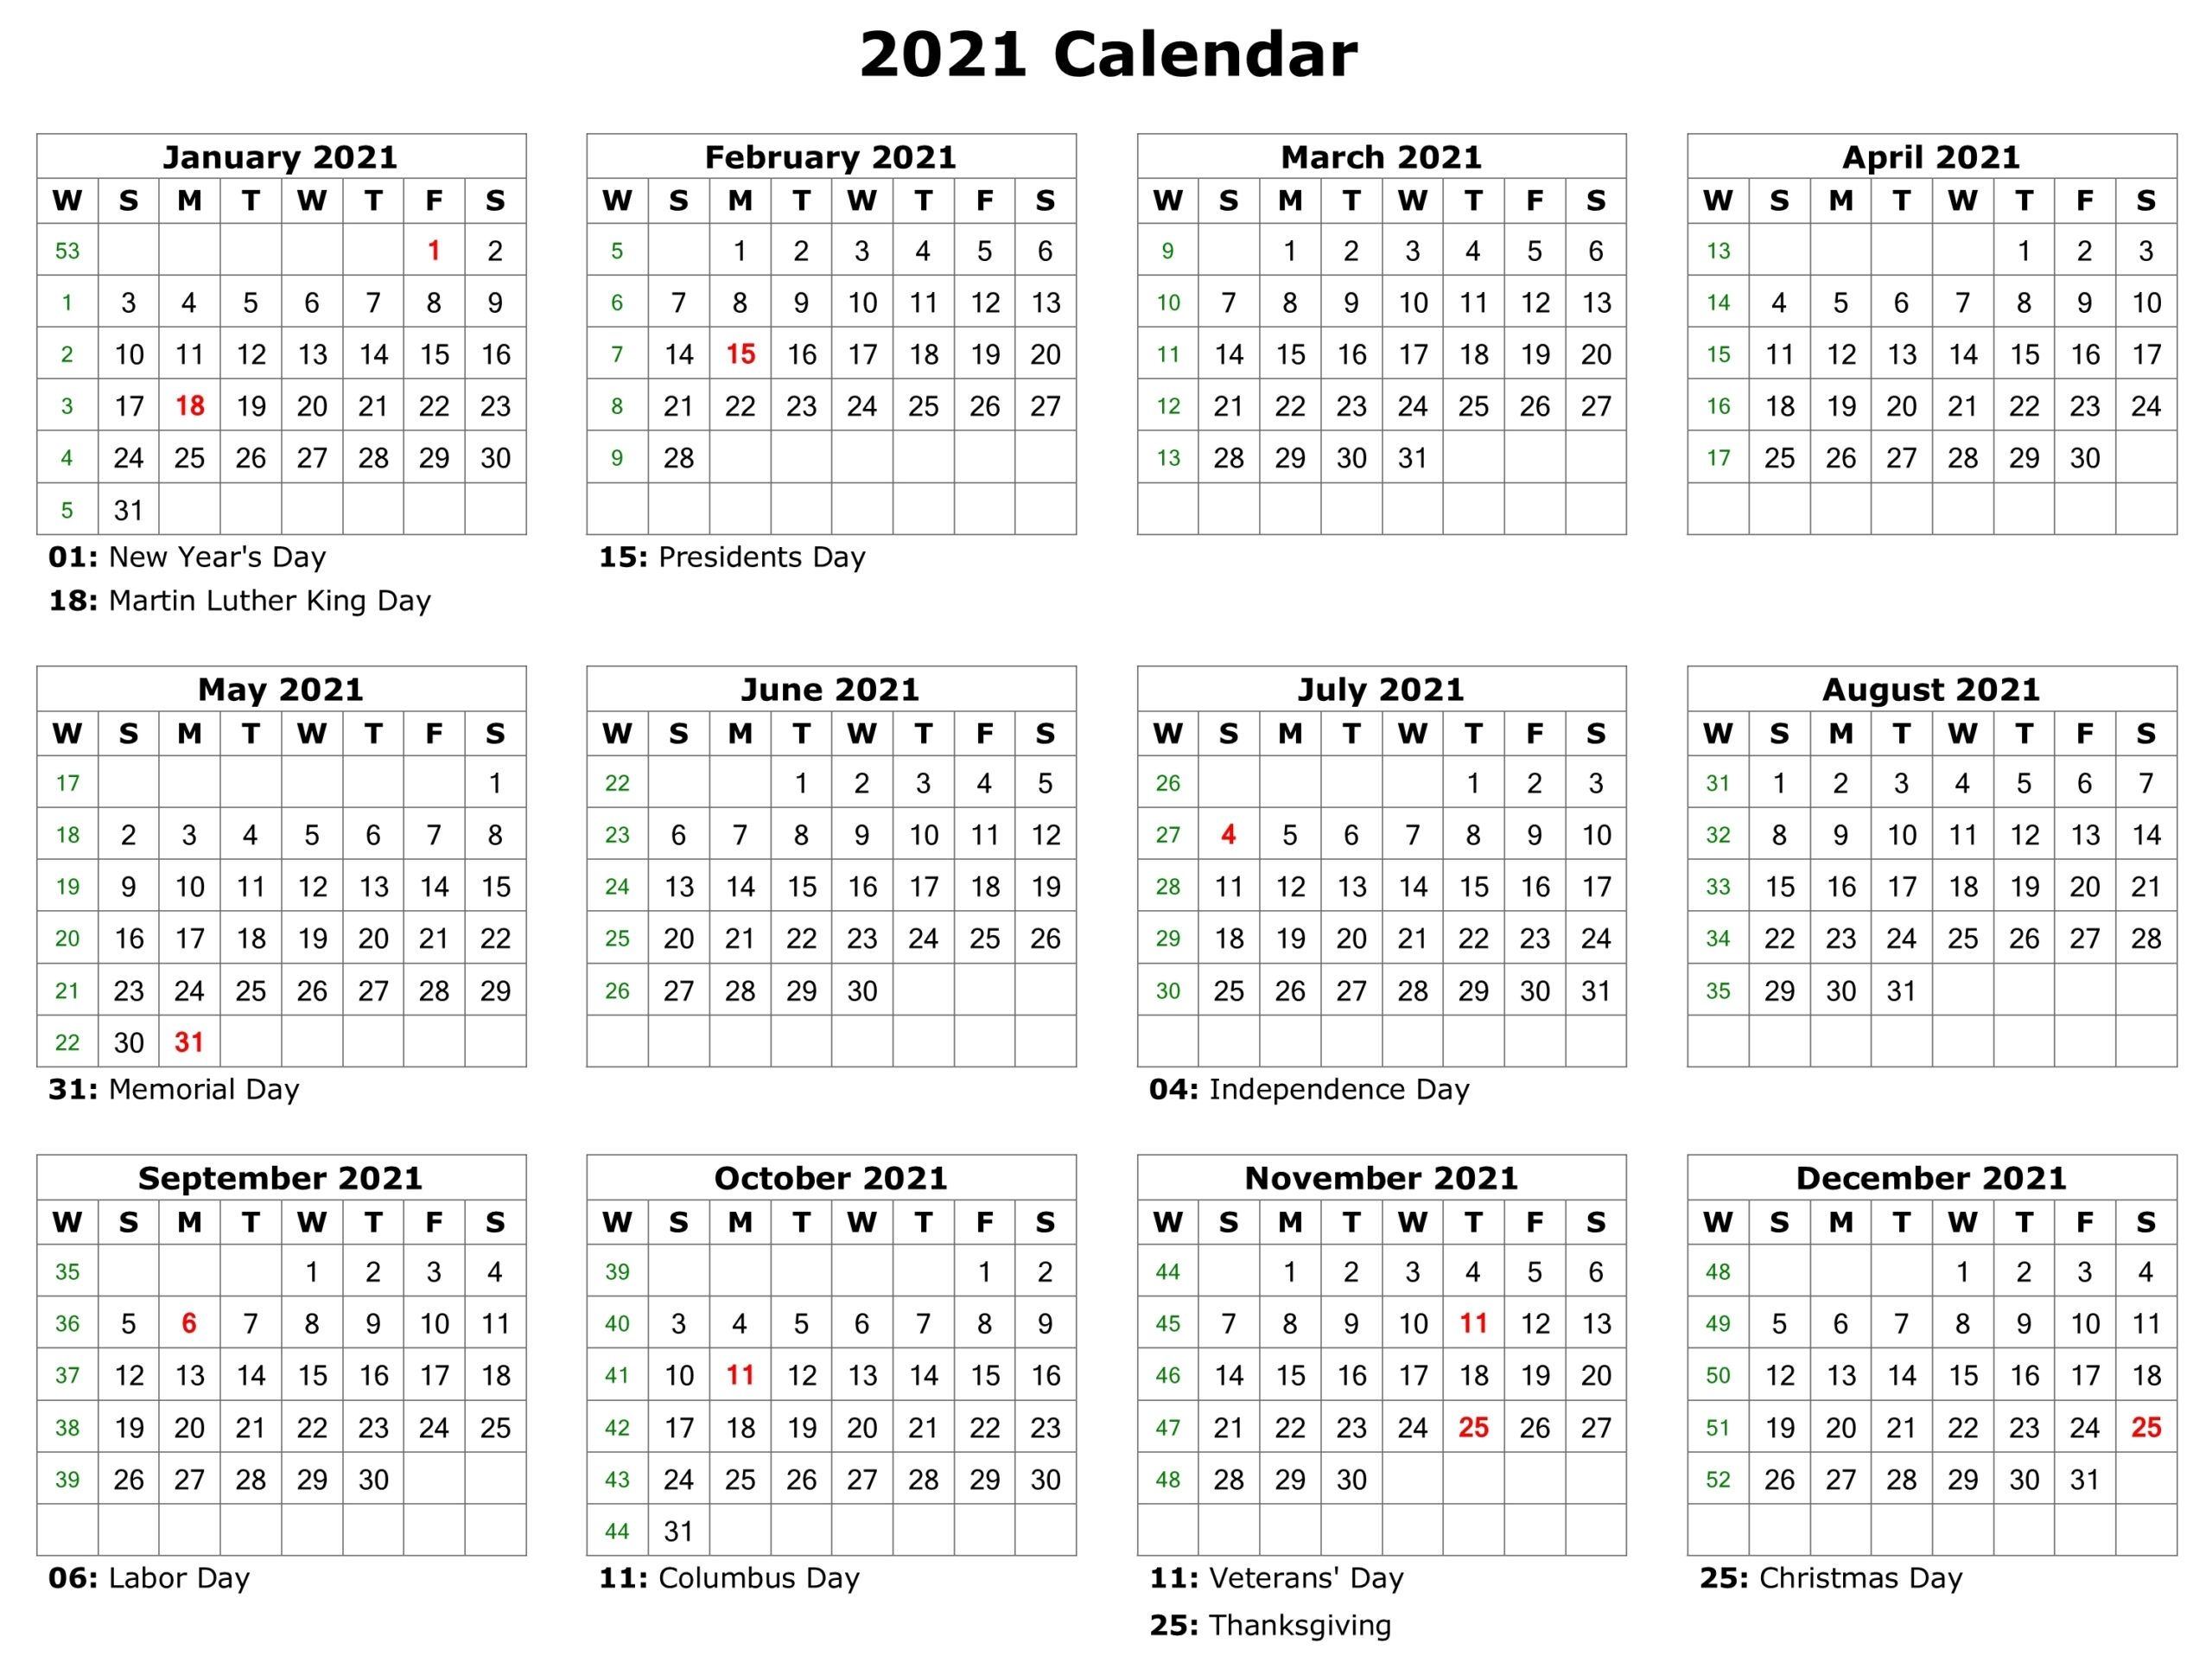 Free Printable 2021 Calendar With Holidays In Word | Free